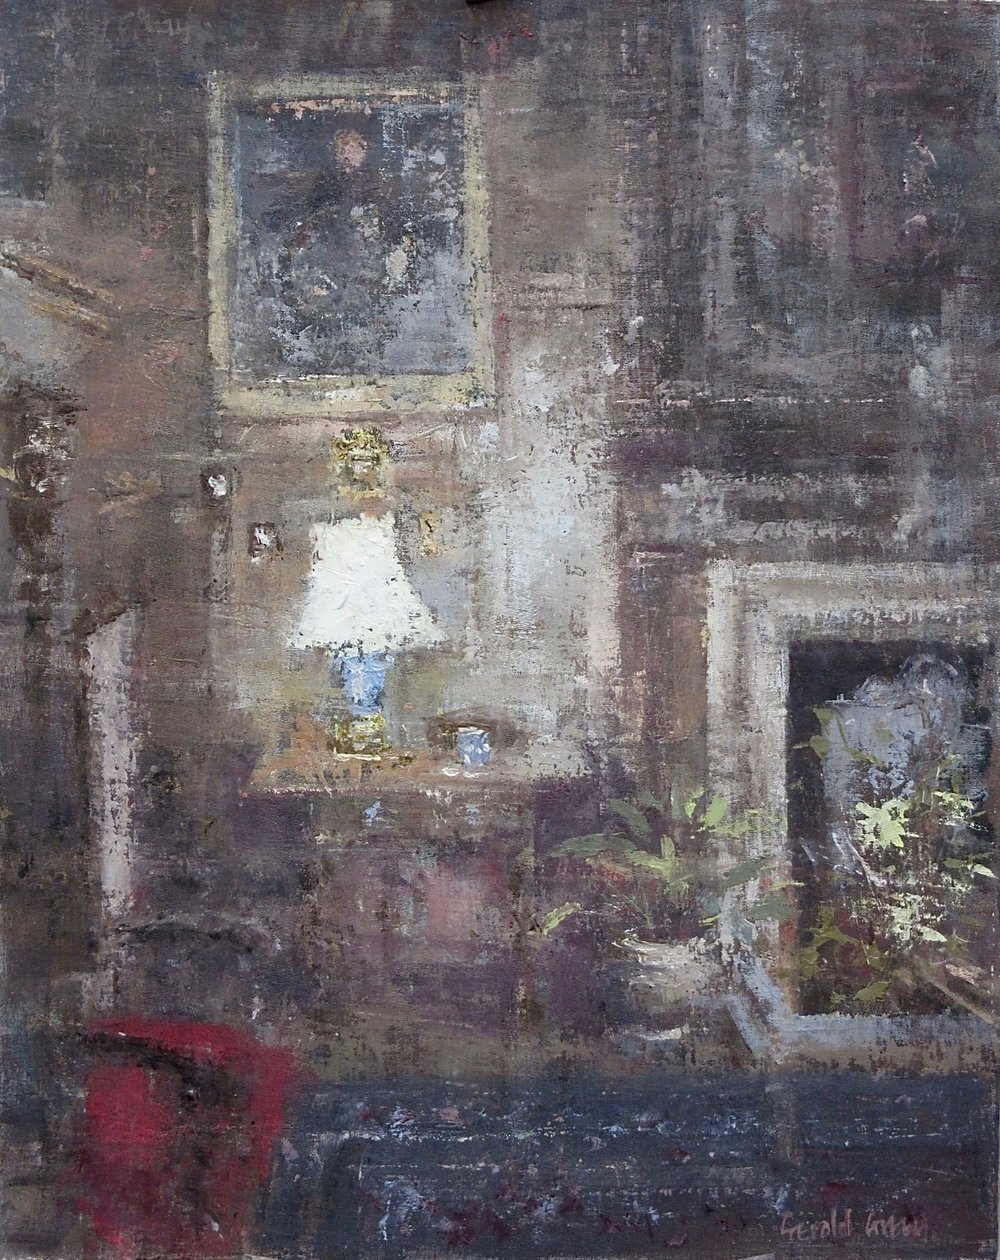 The Blue Table Lamp: 20 x 16 in: £1750   (currently at The Priory Gallery Broadway)